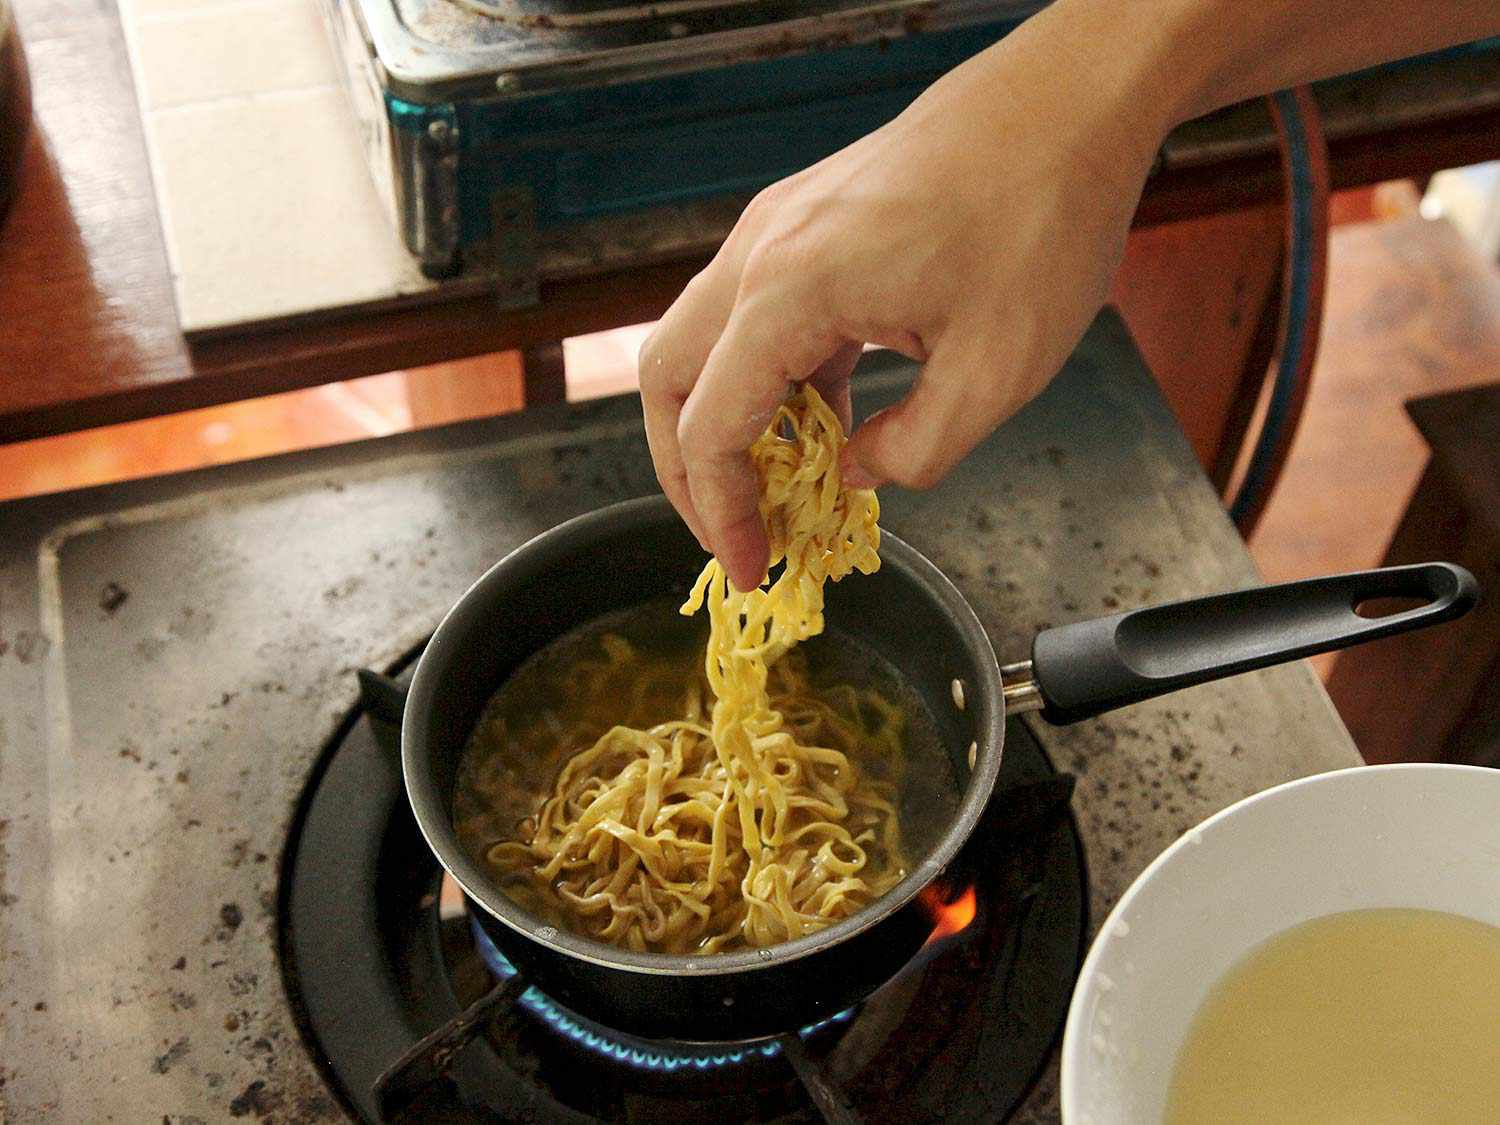 Boiling noodles in water for Khao Soi Gai.